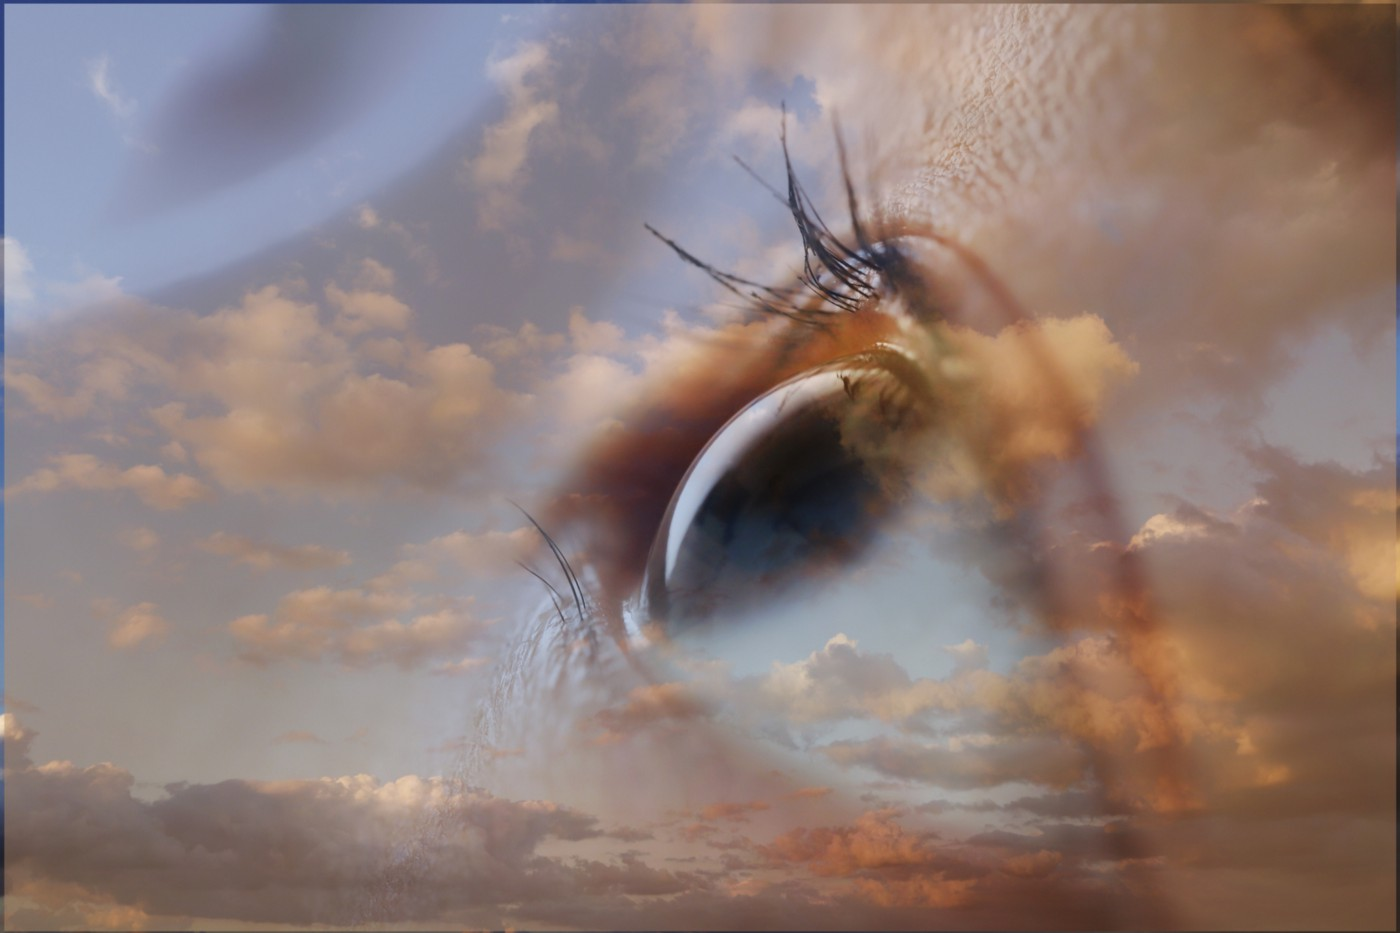 Double exposure image of a person's eye against a cloudy sunset sky.